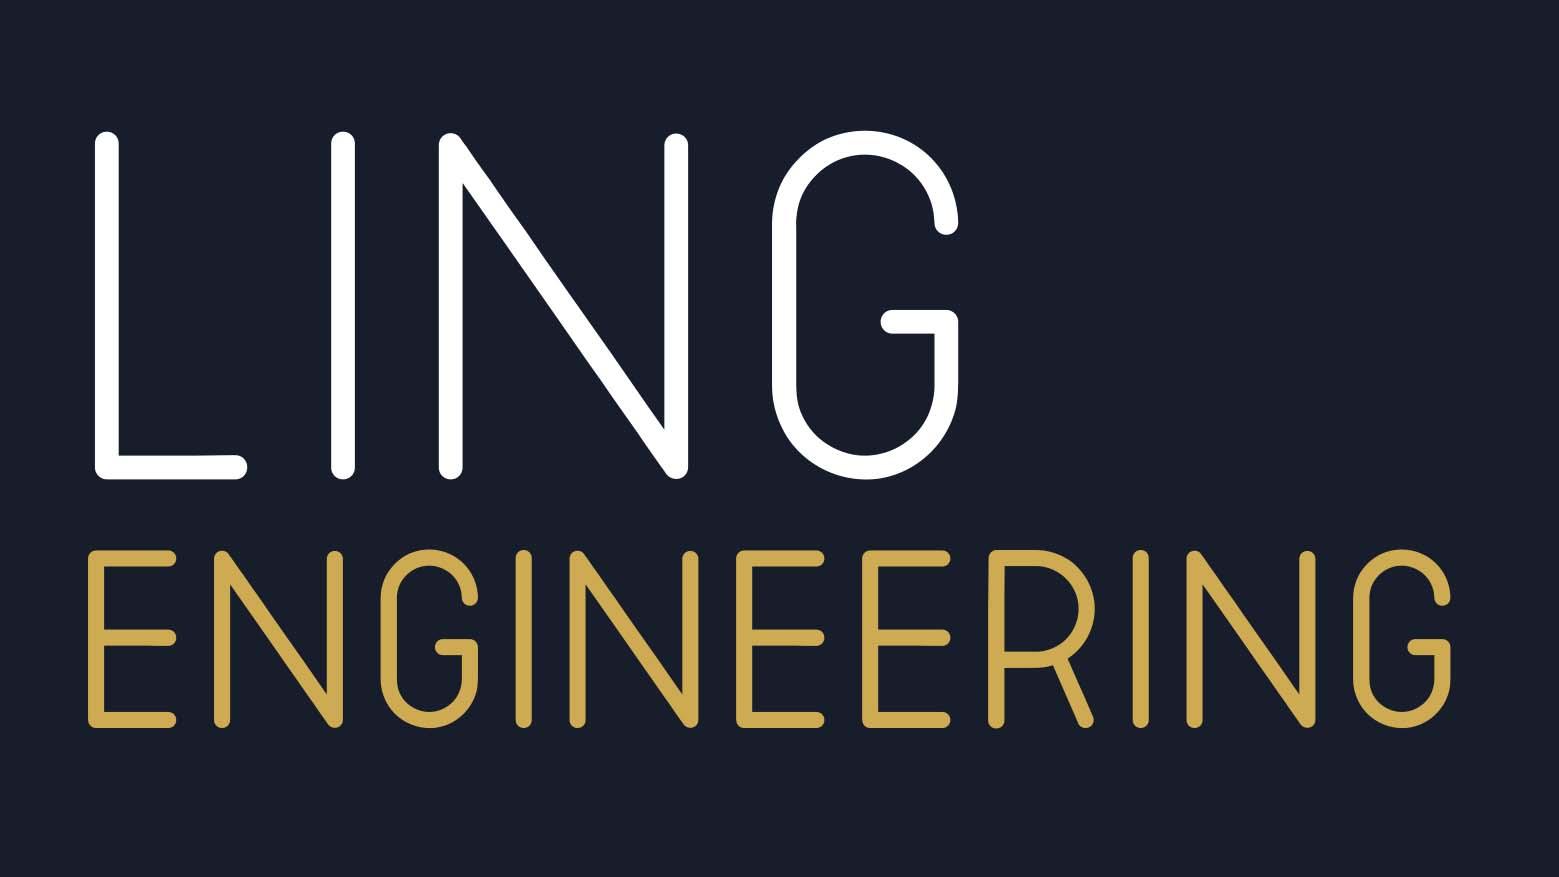 Ling Engineering